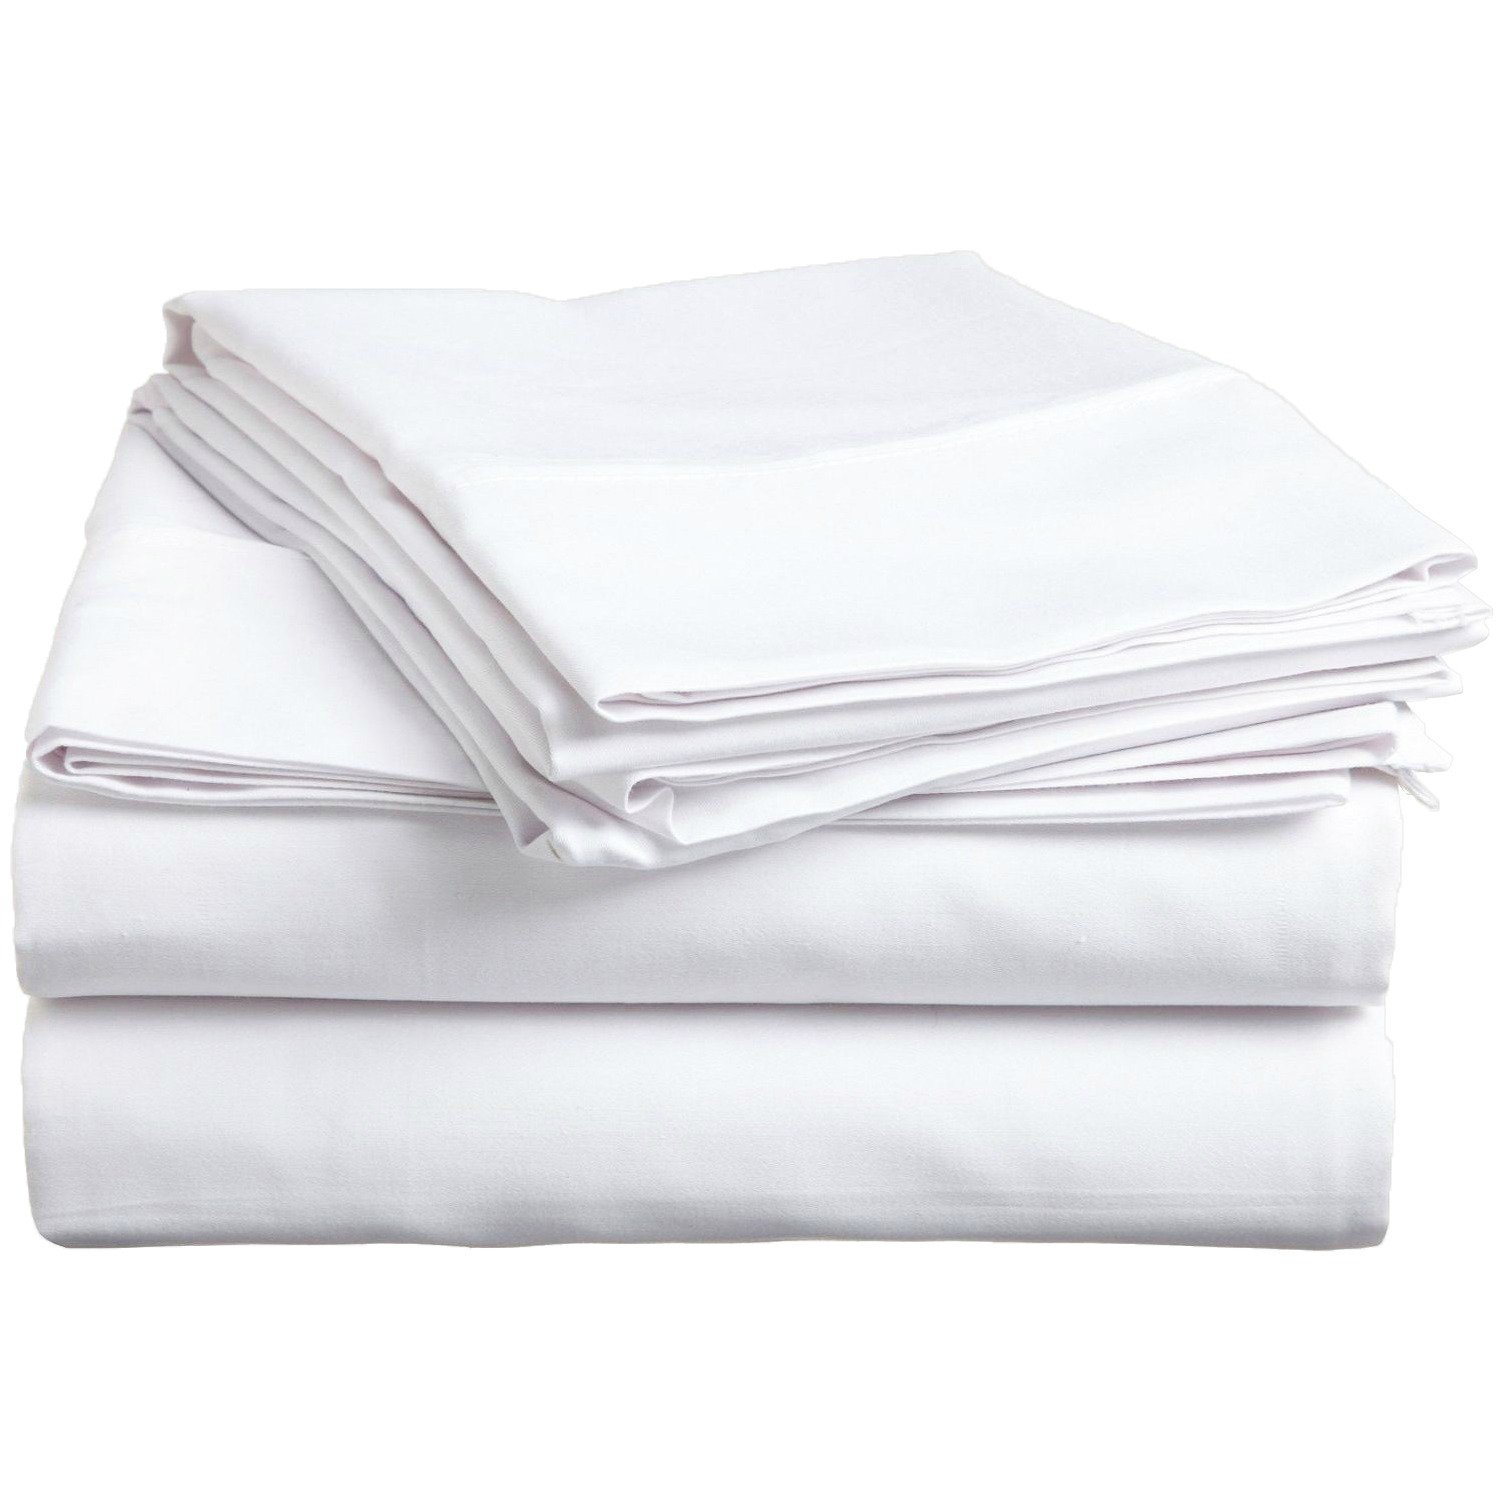 PH 3 Piece Twin Xl White Bed Sheet Set, Ultra cozy, super soft, lightweight, durable, satiny smooth, Fully Elasticized, Sateen weave with 300 thread count, Ivory, Cotton